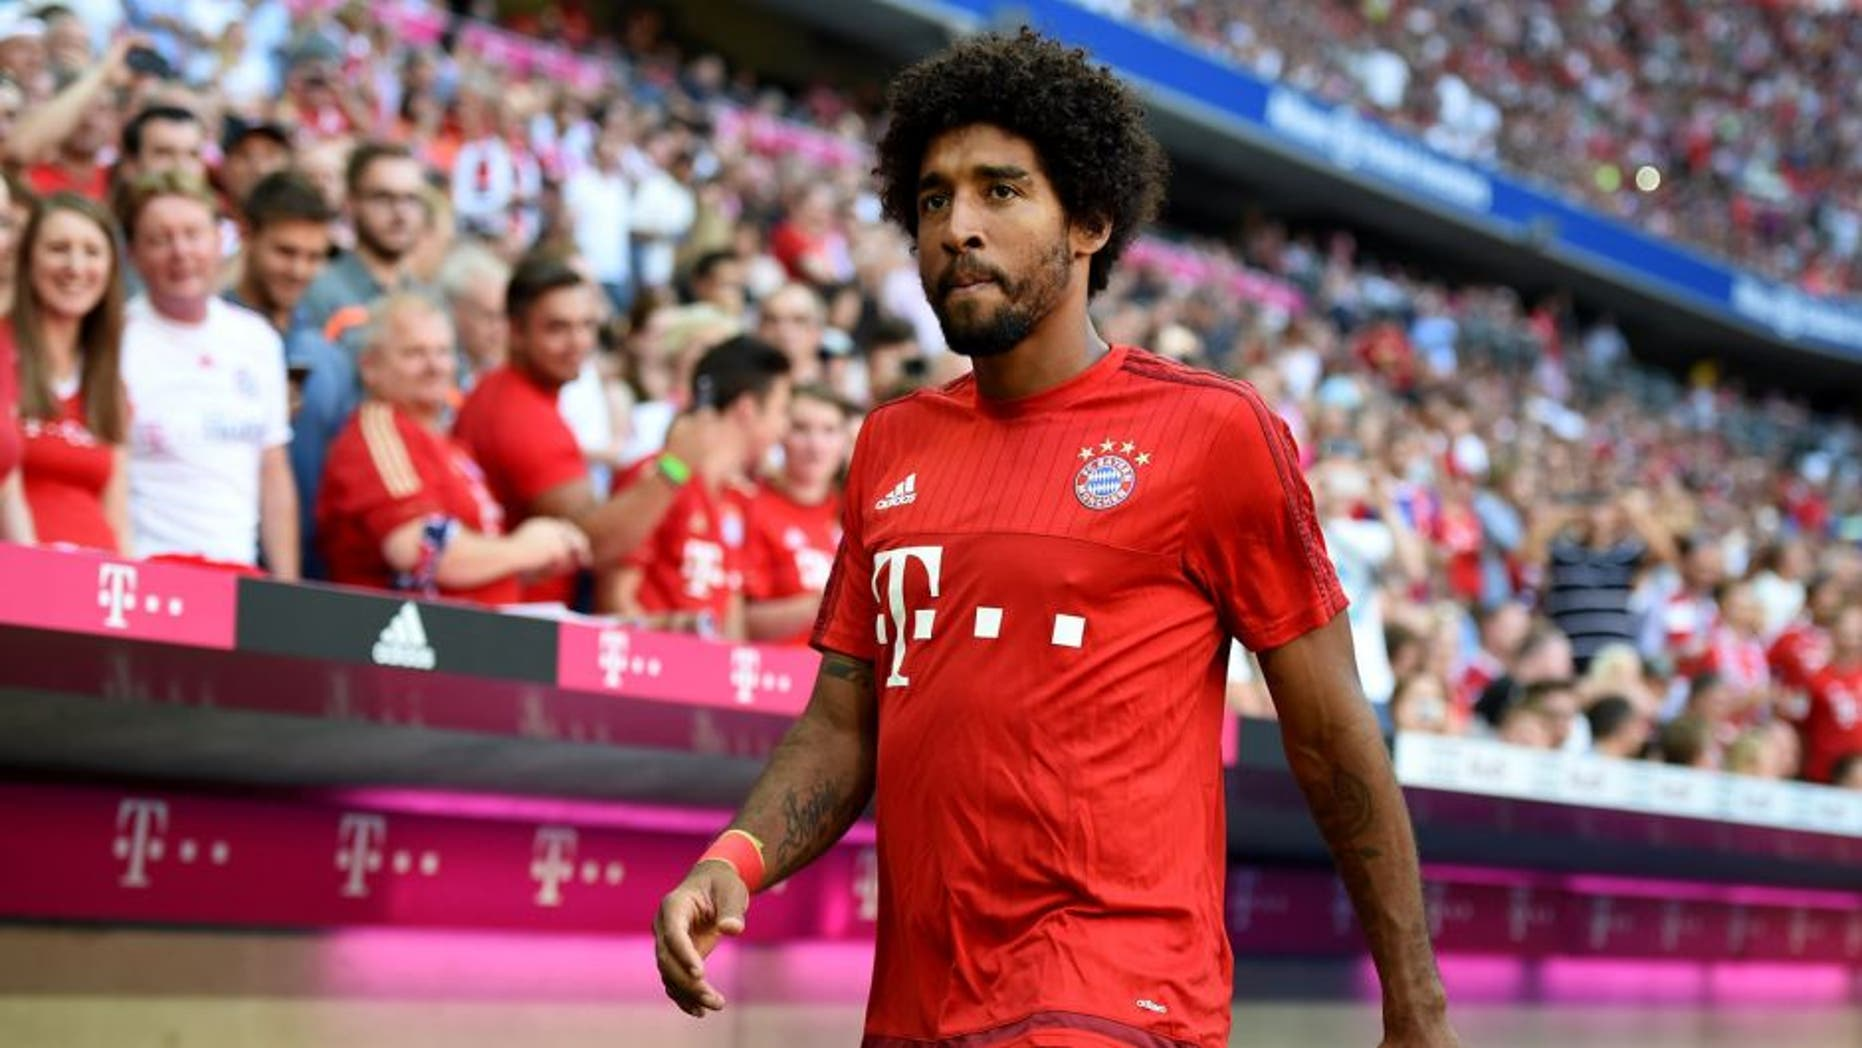 MUNICH, GERMANY - AUGUST 29: Dante of Bayern Muenchen looks on before the Bundesliga match between FC Bayern Muenchen and Bayer Leverkusen at Allianz Arena on August 29, 2015 in Munich, Germany. (Photo by Matthias Hangst/Bongarts/Getty Images)